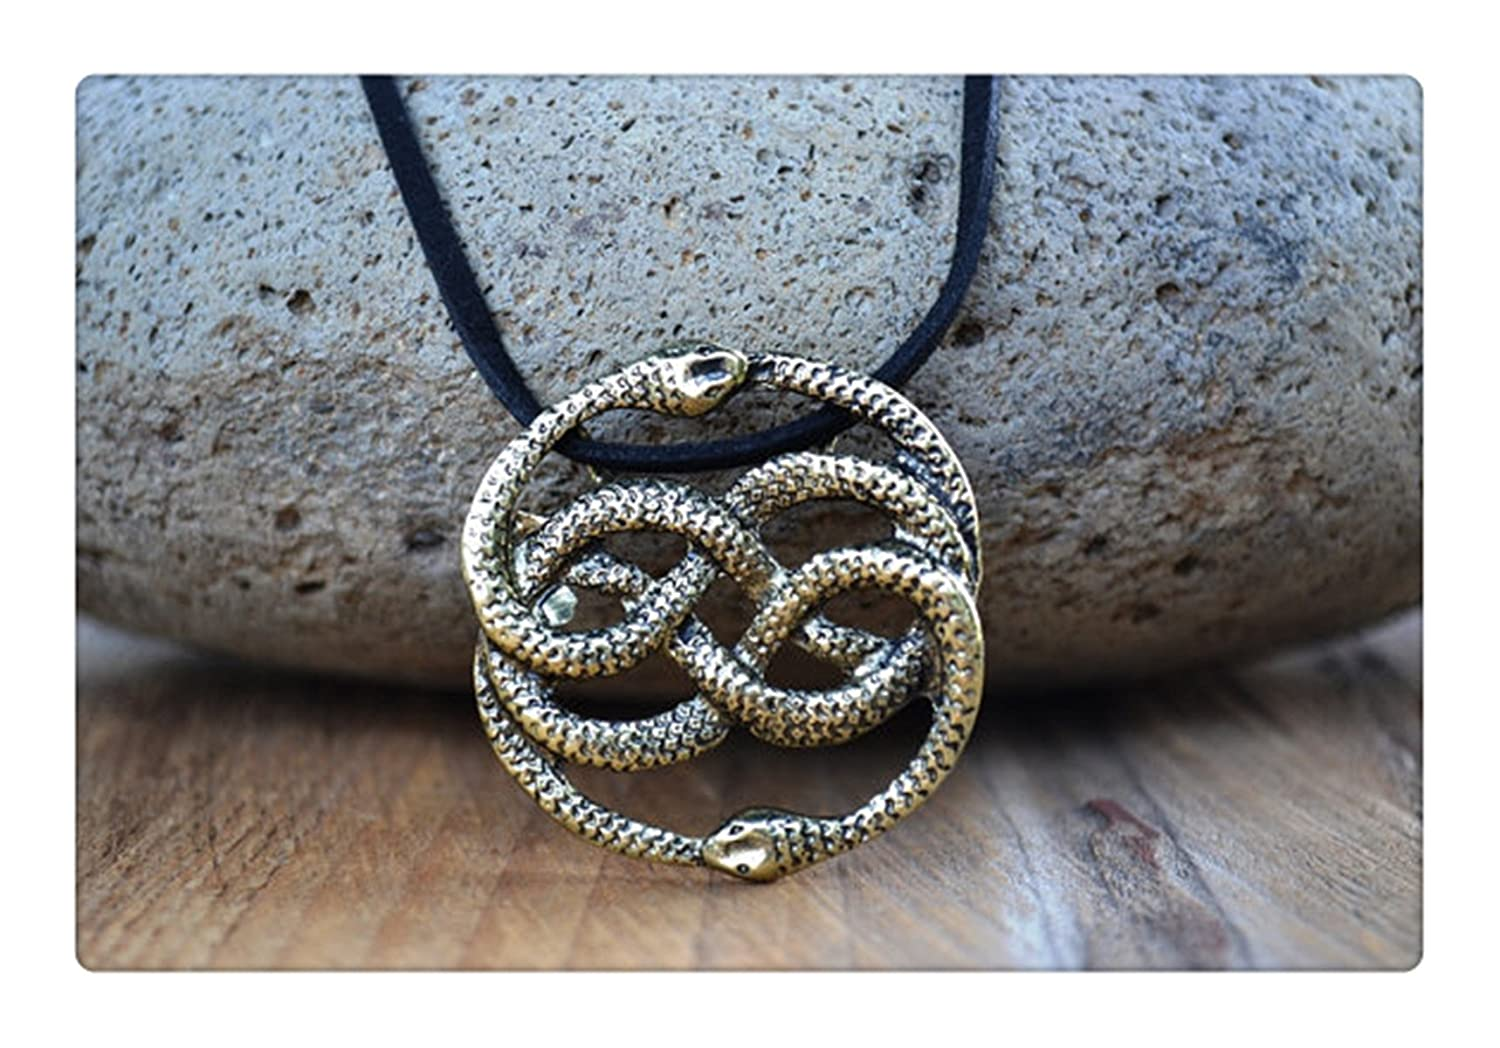 Neverending Story Antique Bronze Necklace, Auryn Necklace, Leather, Choker Option, Never Ending Story Snake Pendant, DSD D5